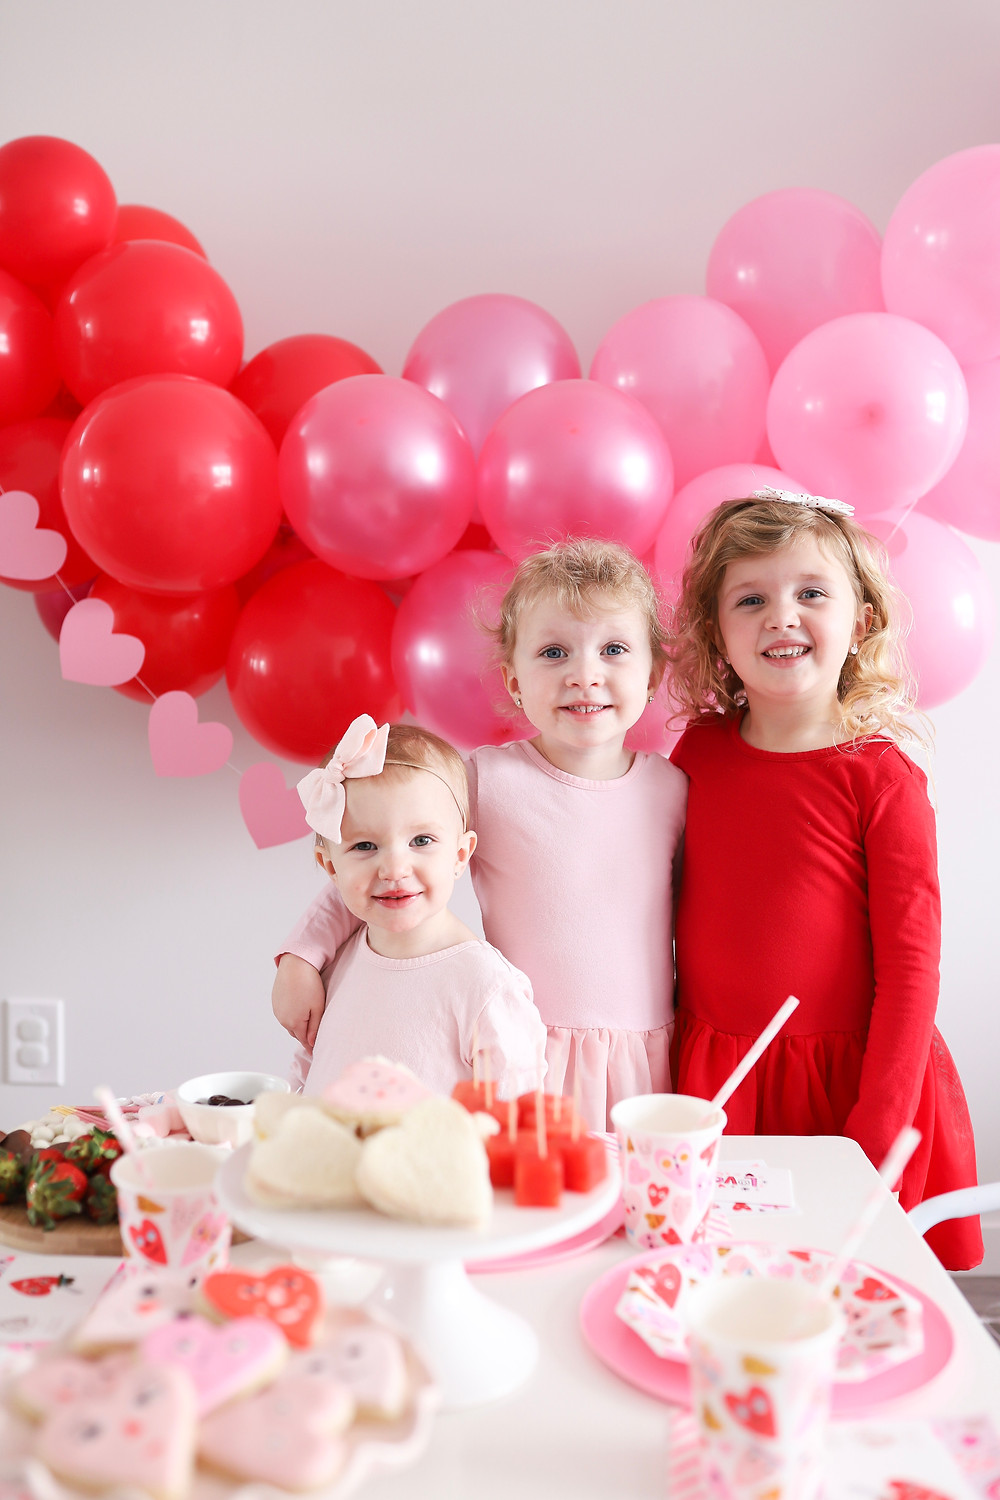 Three little girls smiling at the camera at a Valentine's Day party.